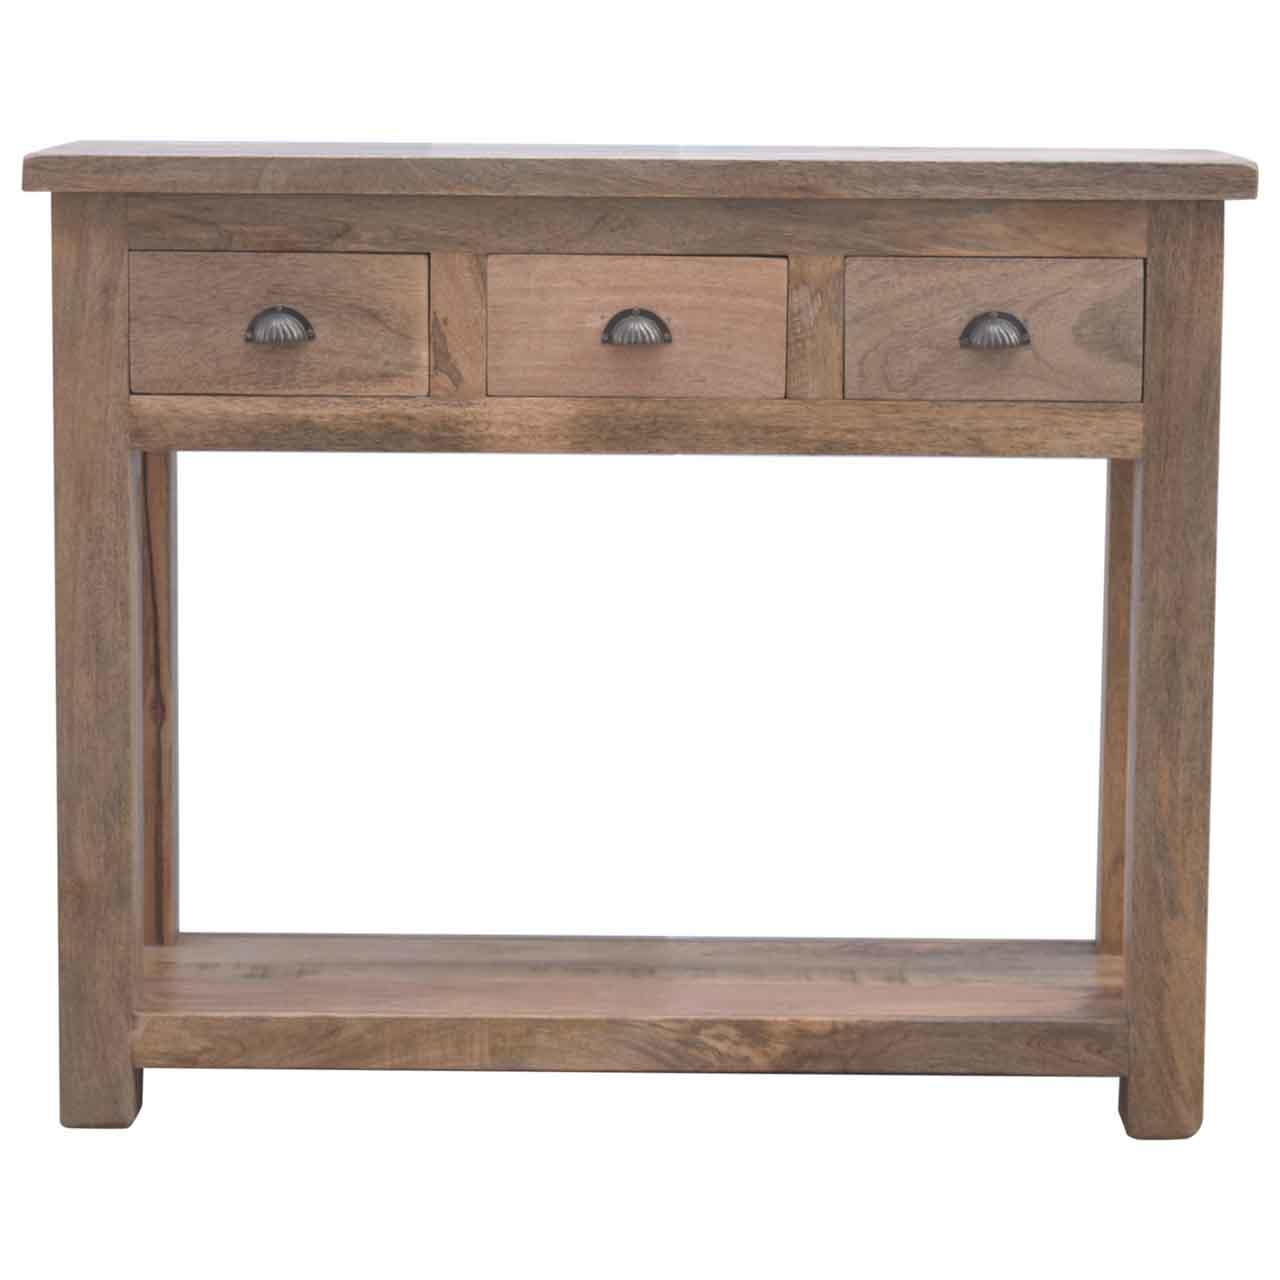 Solid Wood Hallway Console Table with Three Drawers